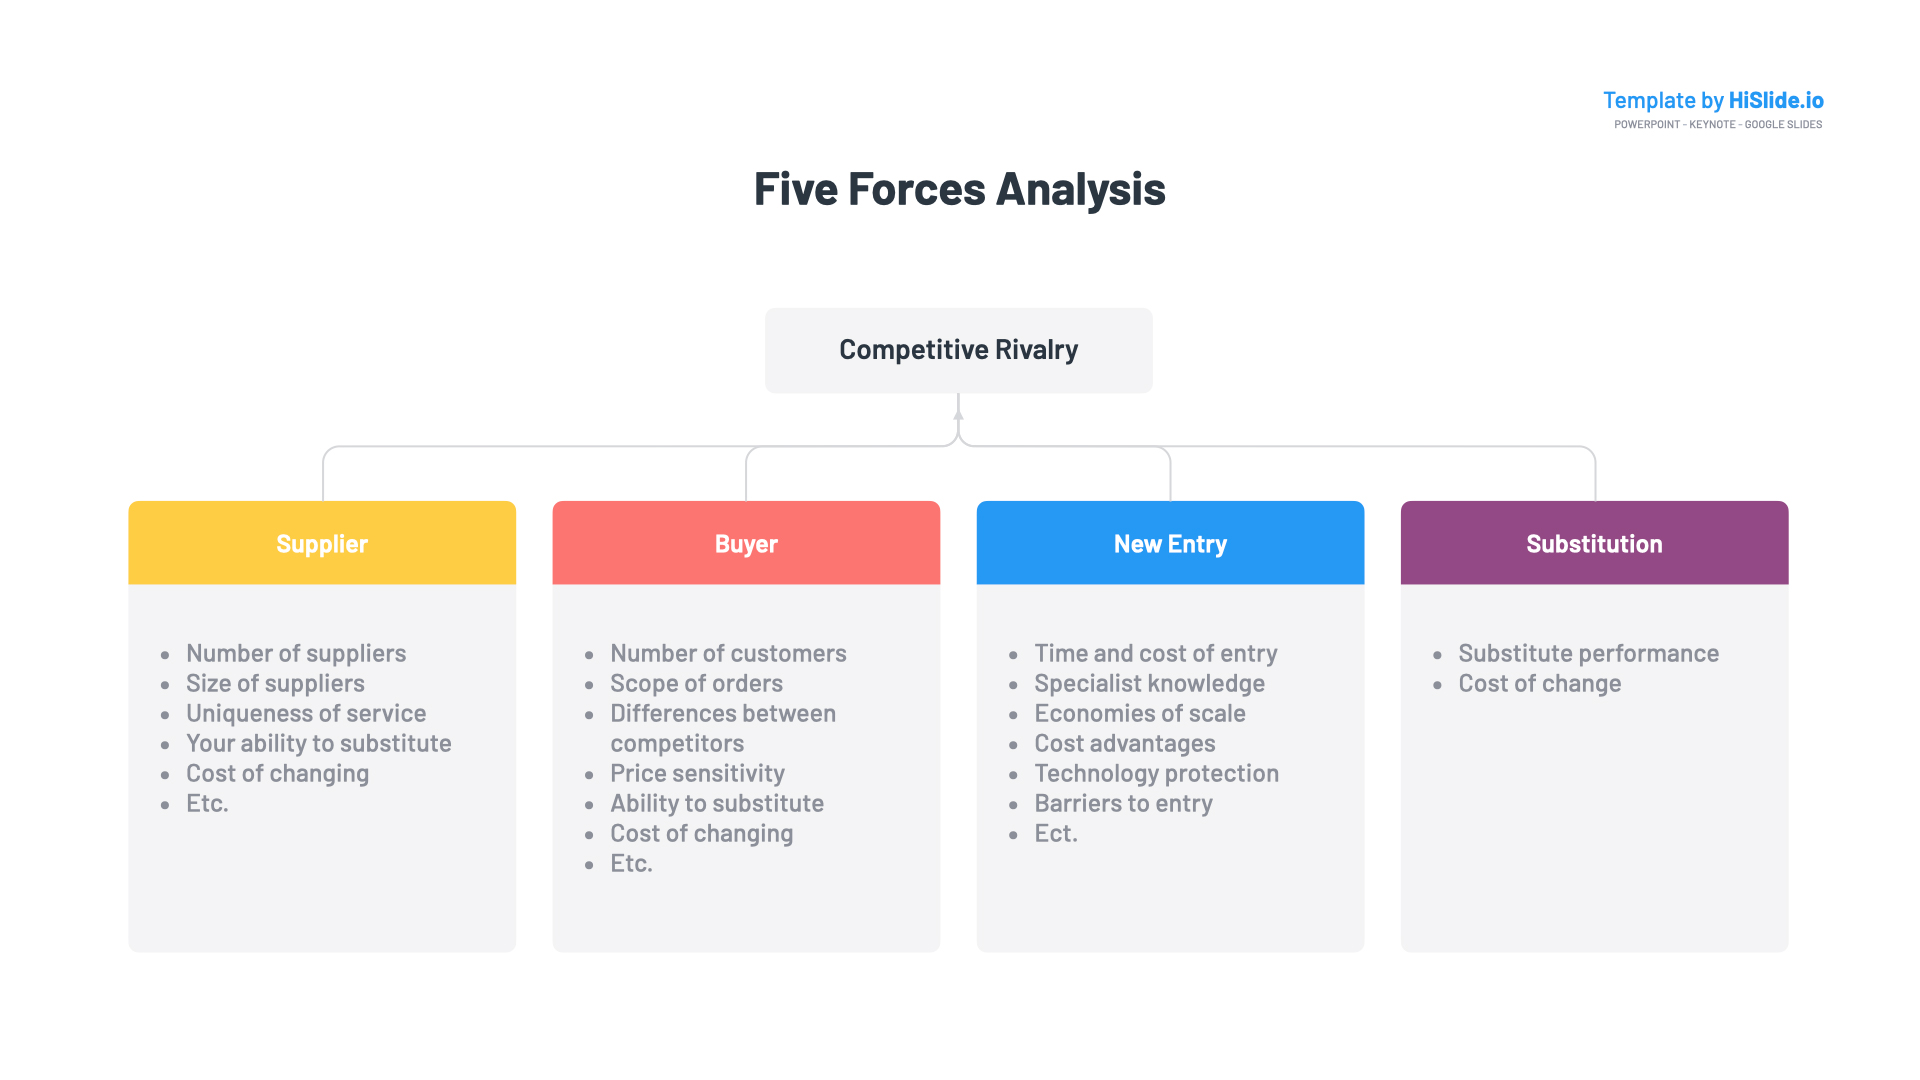 Five forces analysis slide